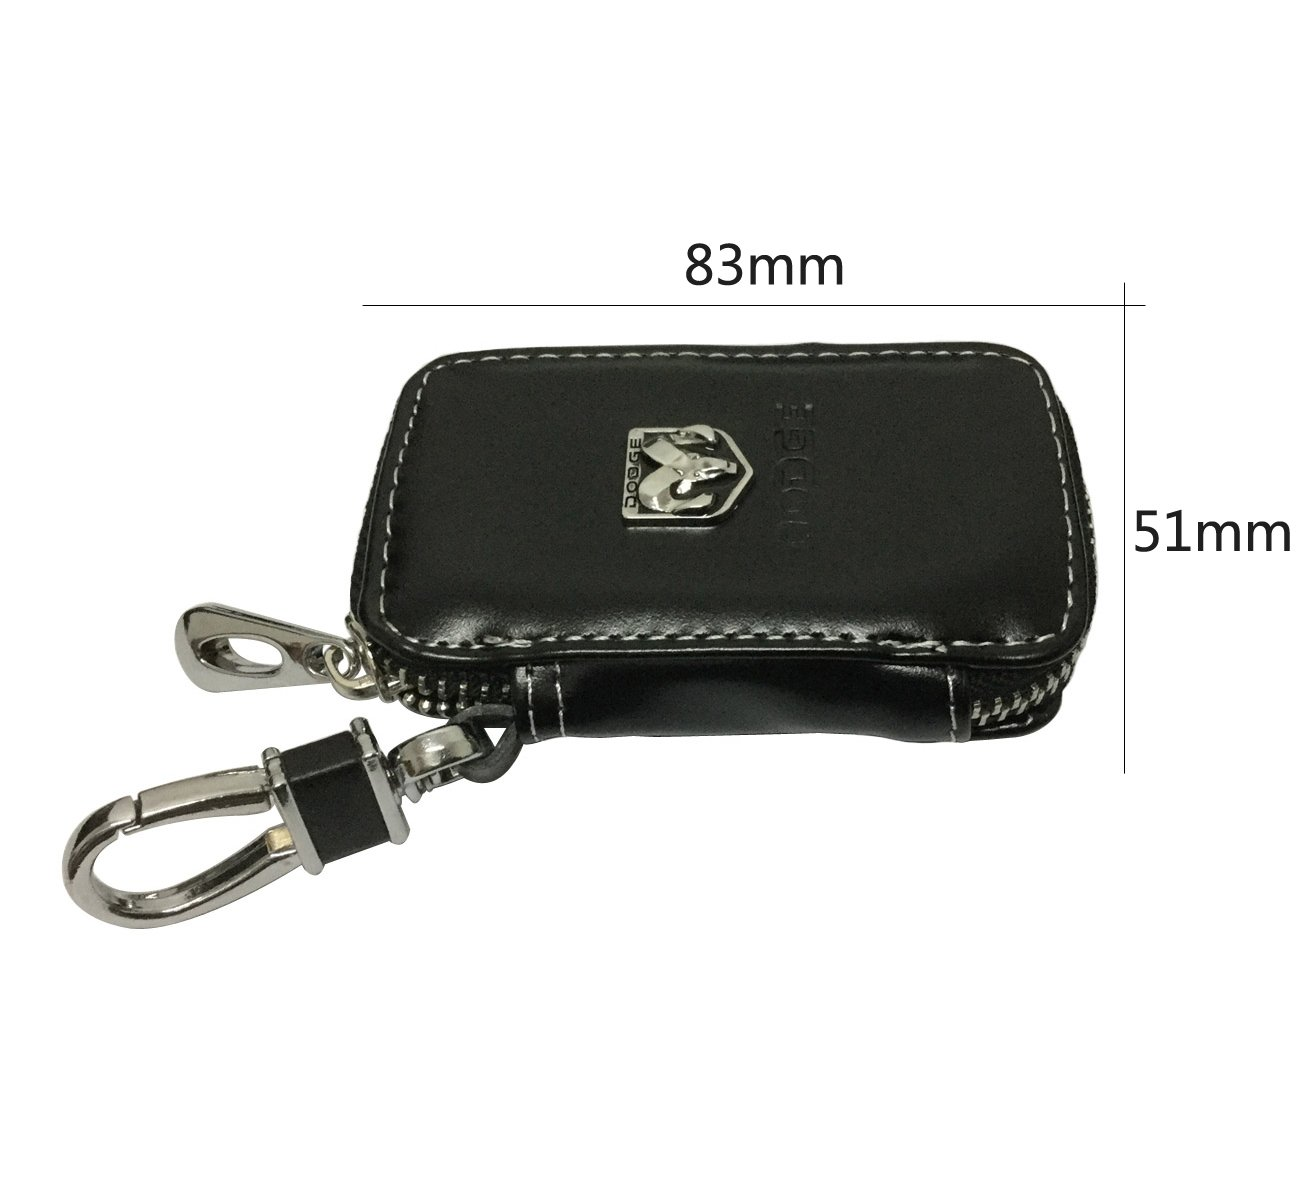 Cview New Car Key Wallet Zipper Case Black Leather Car House Office Key Chain Coin Holder Metal Hook Bag Collection For Dodge Car Vehicle Auto Lover